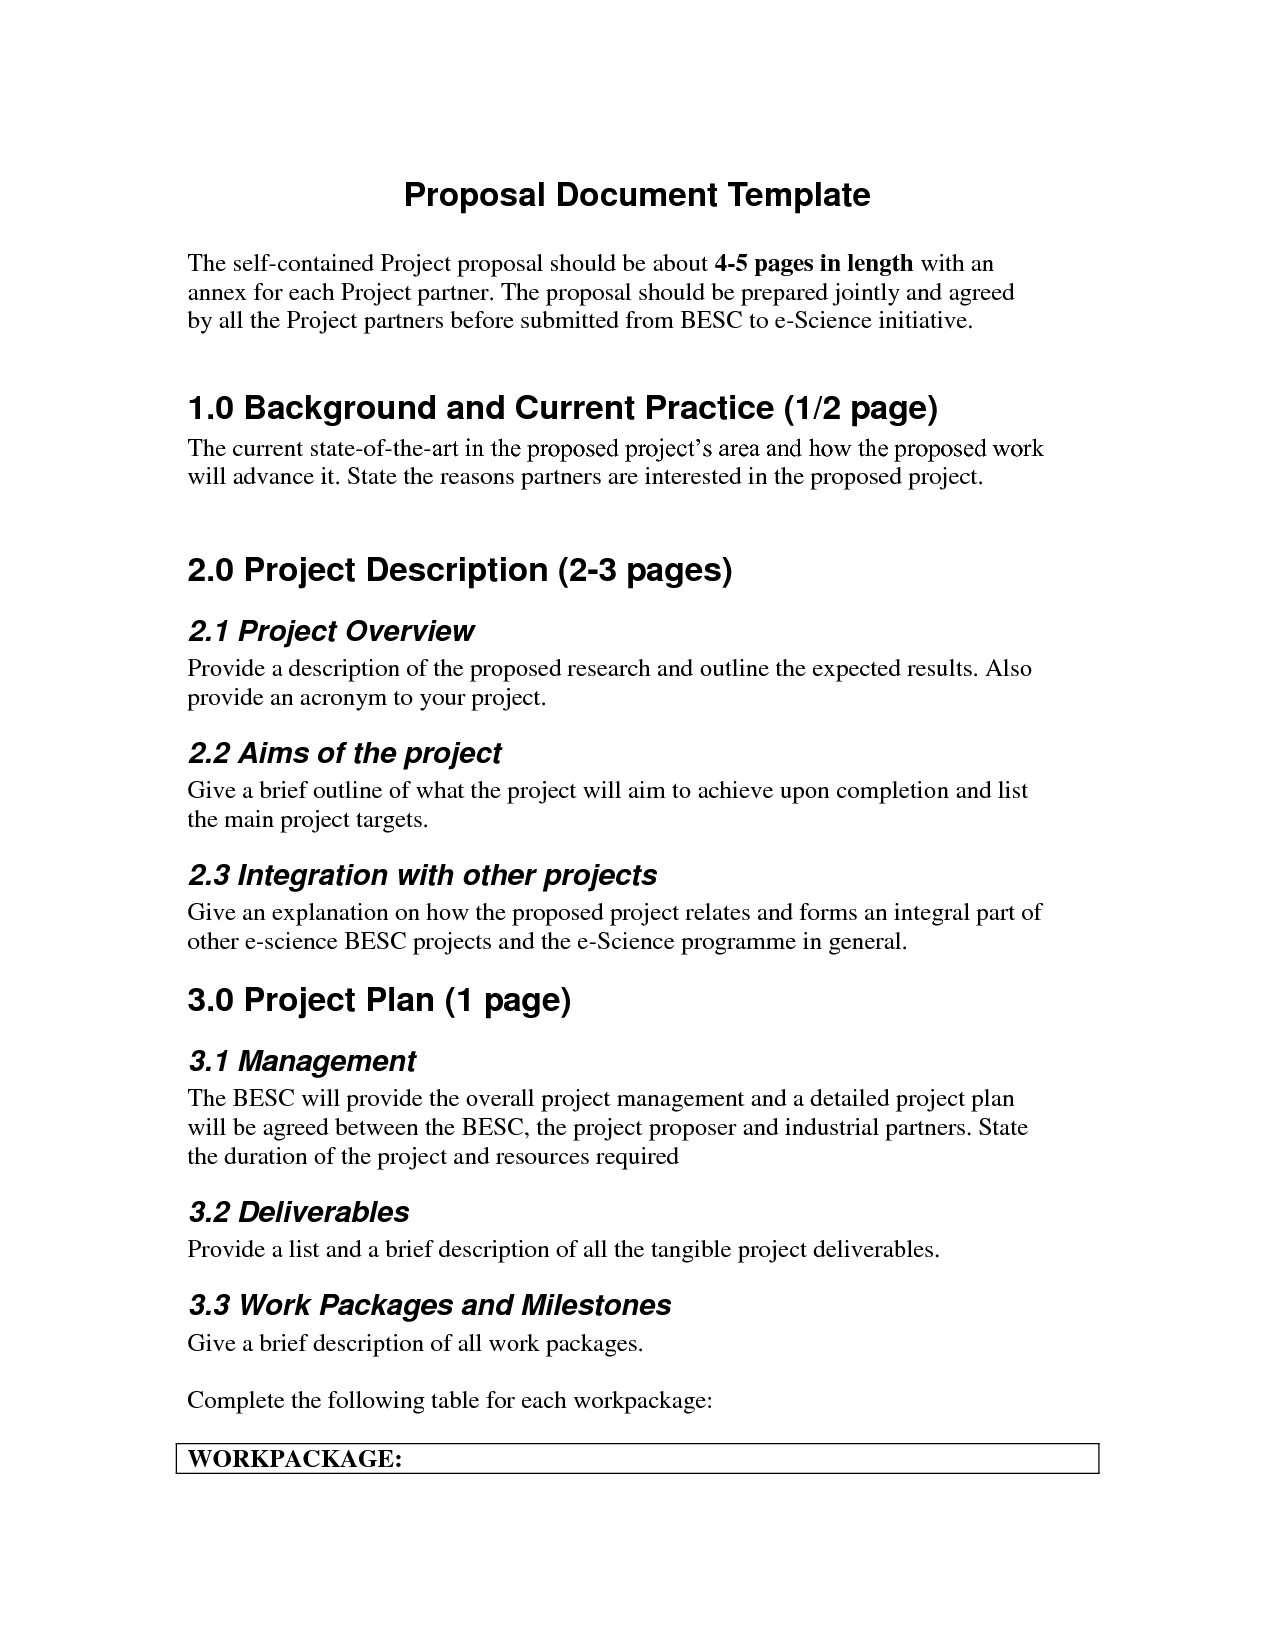 Sample Biographical Essay Essay Proposal Template Proposal Essay Topics Before Students Write A  College Research Paper Teachers Essays also Self Development Essay Essay Proposal Template Proposal Essay Topics Before Students  Progressive Era Reforms Essay